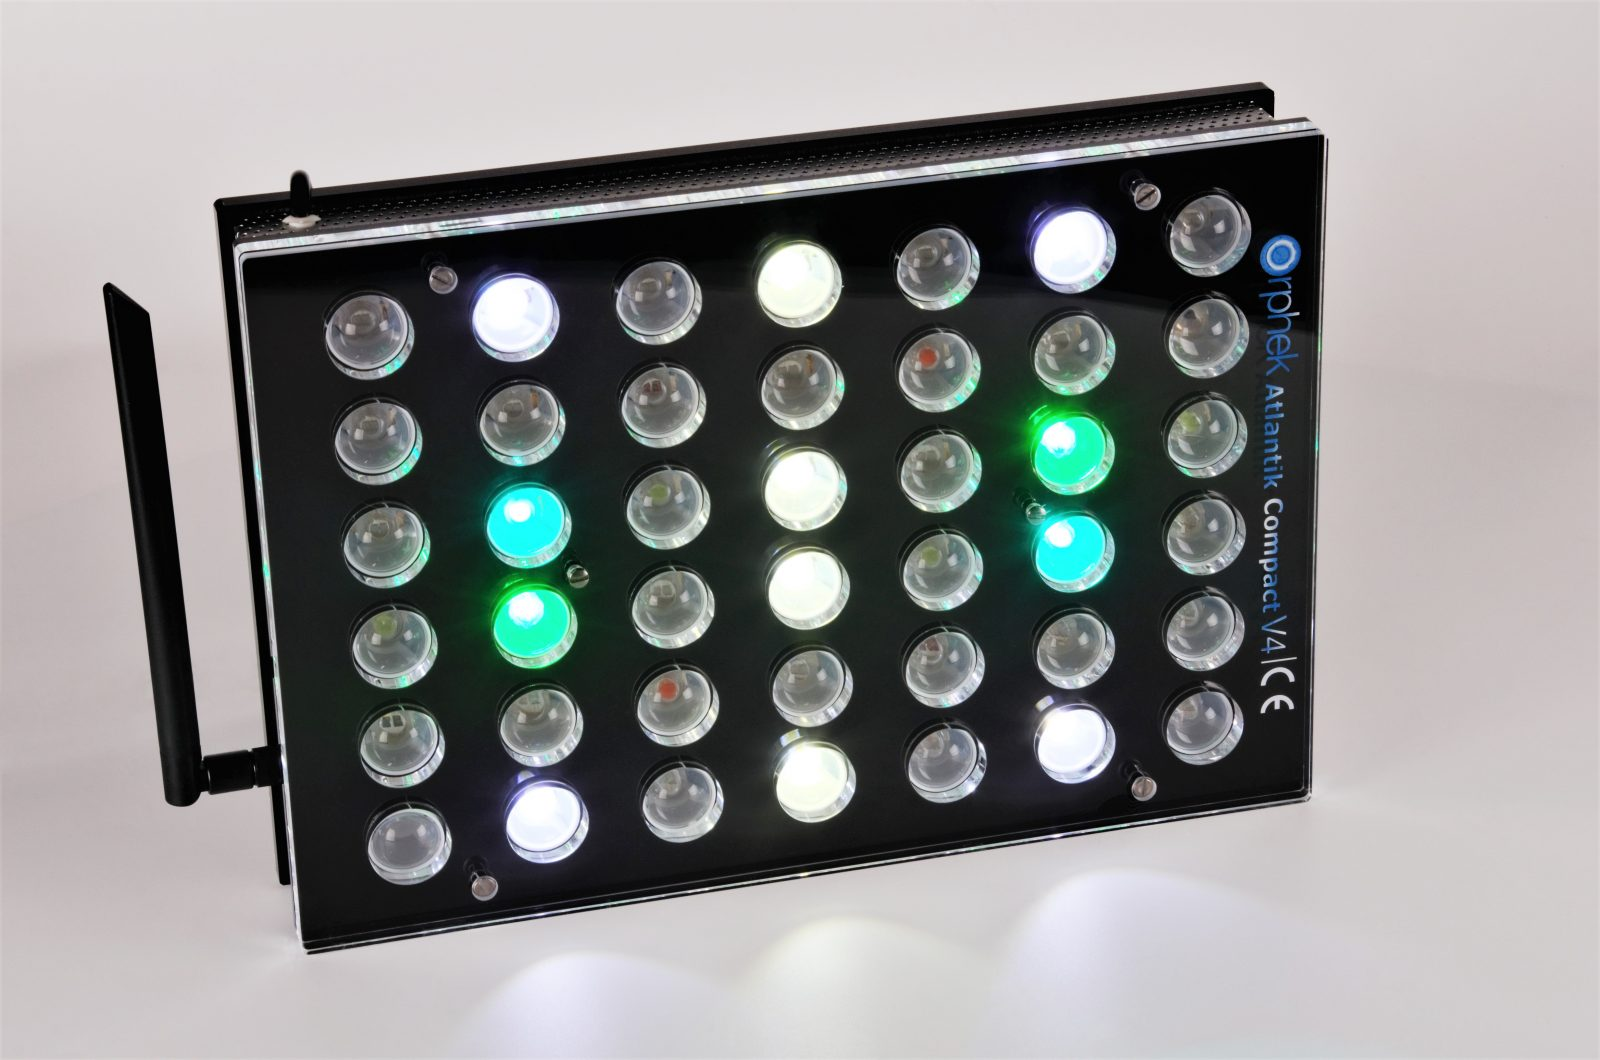 Orphek Aquarium LED Lighting Atlantik Compact V4 light on channel 1